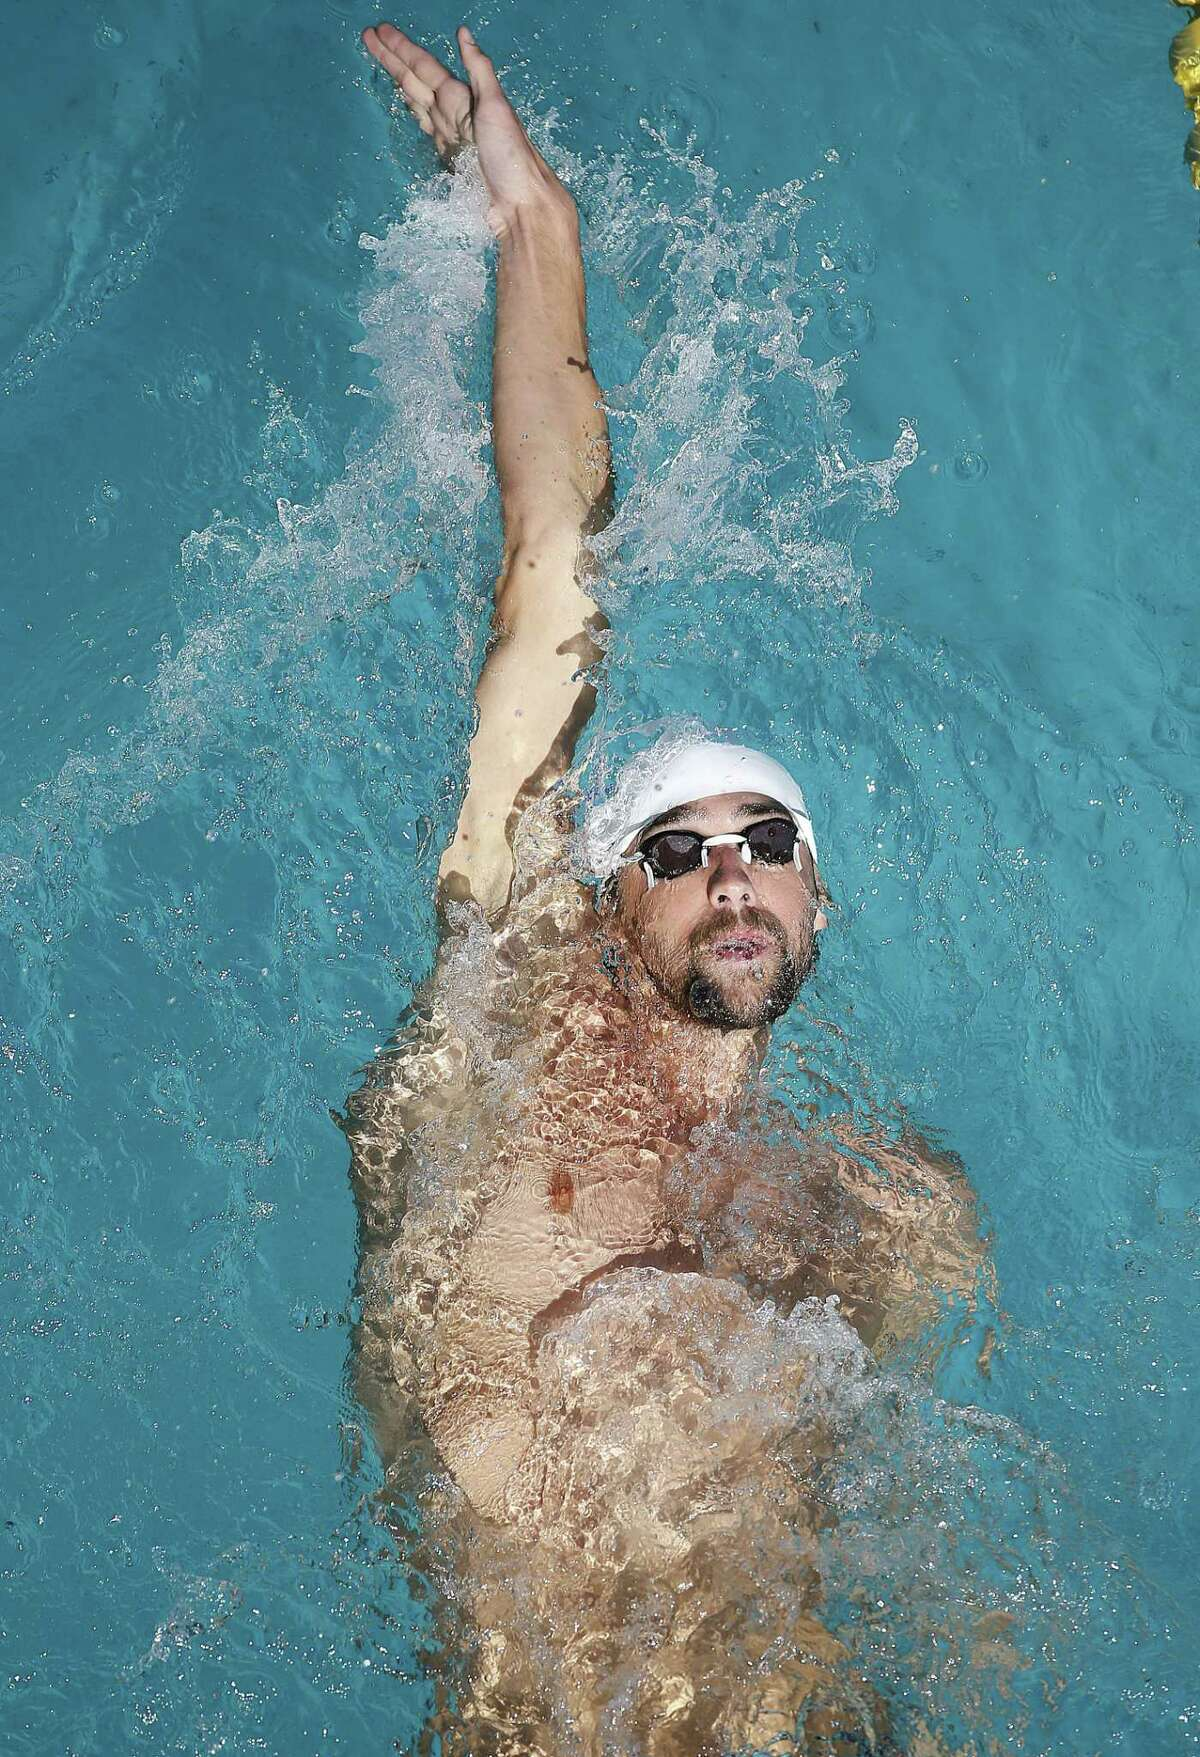 FILE - In a June 22, 2014, file photo Michael Phelps swims in the warm up pool during the Santa Clara International Grand Prix swim meet in Santa Clara, Calif. USA Swimming on Monday, Oct. 6, 2014, suspended Phelps for six months as a result of the Olympic champion's second DUI arrest.